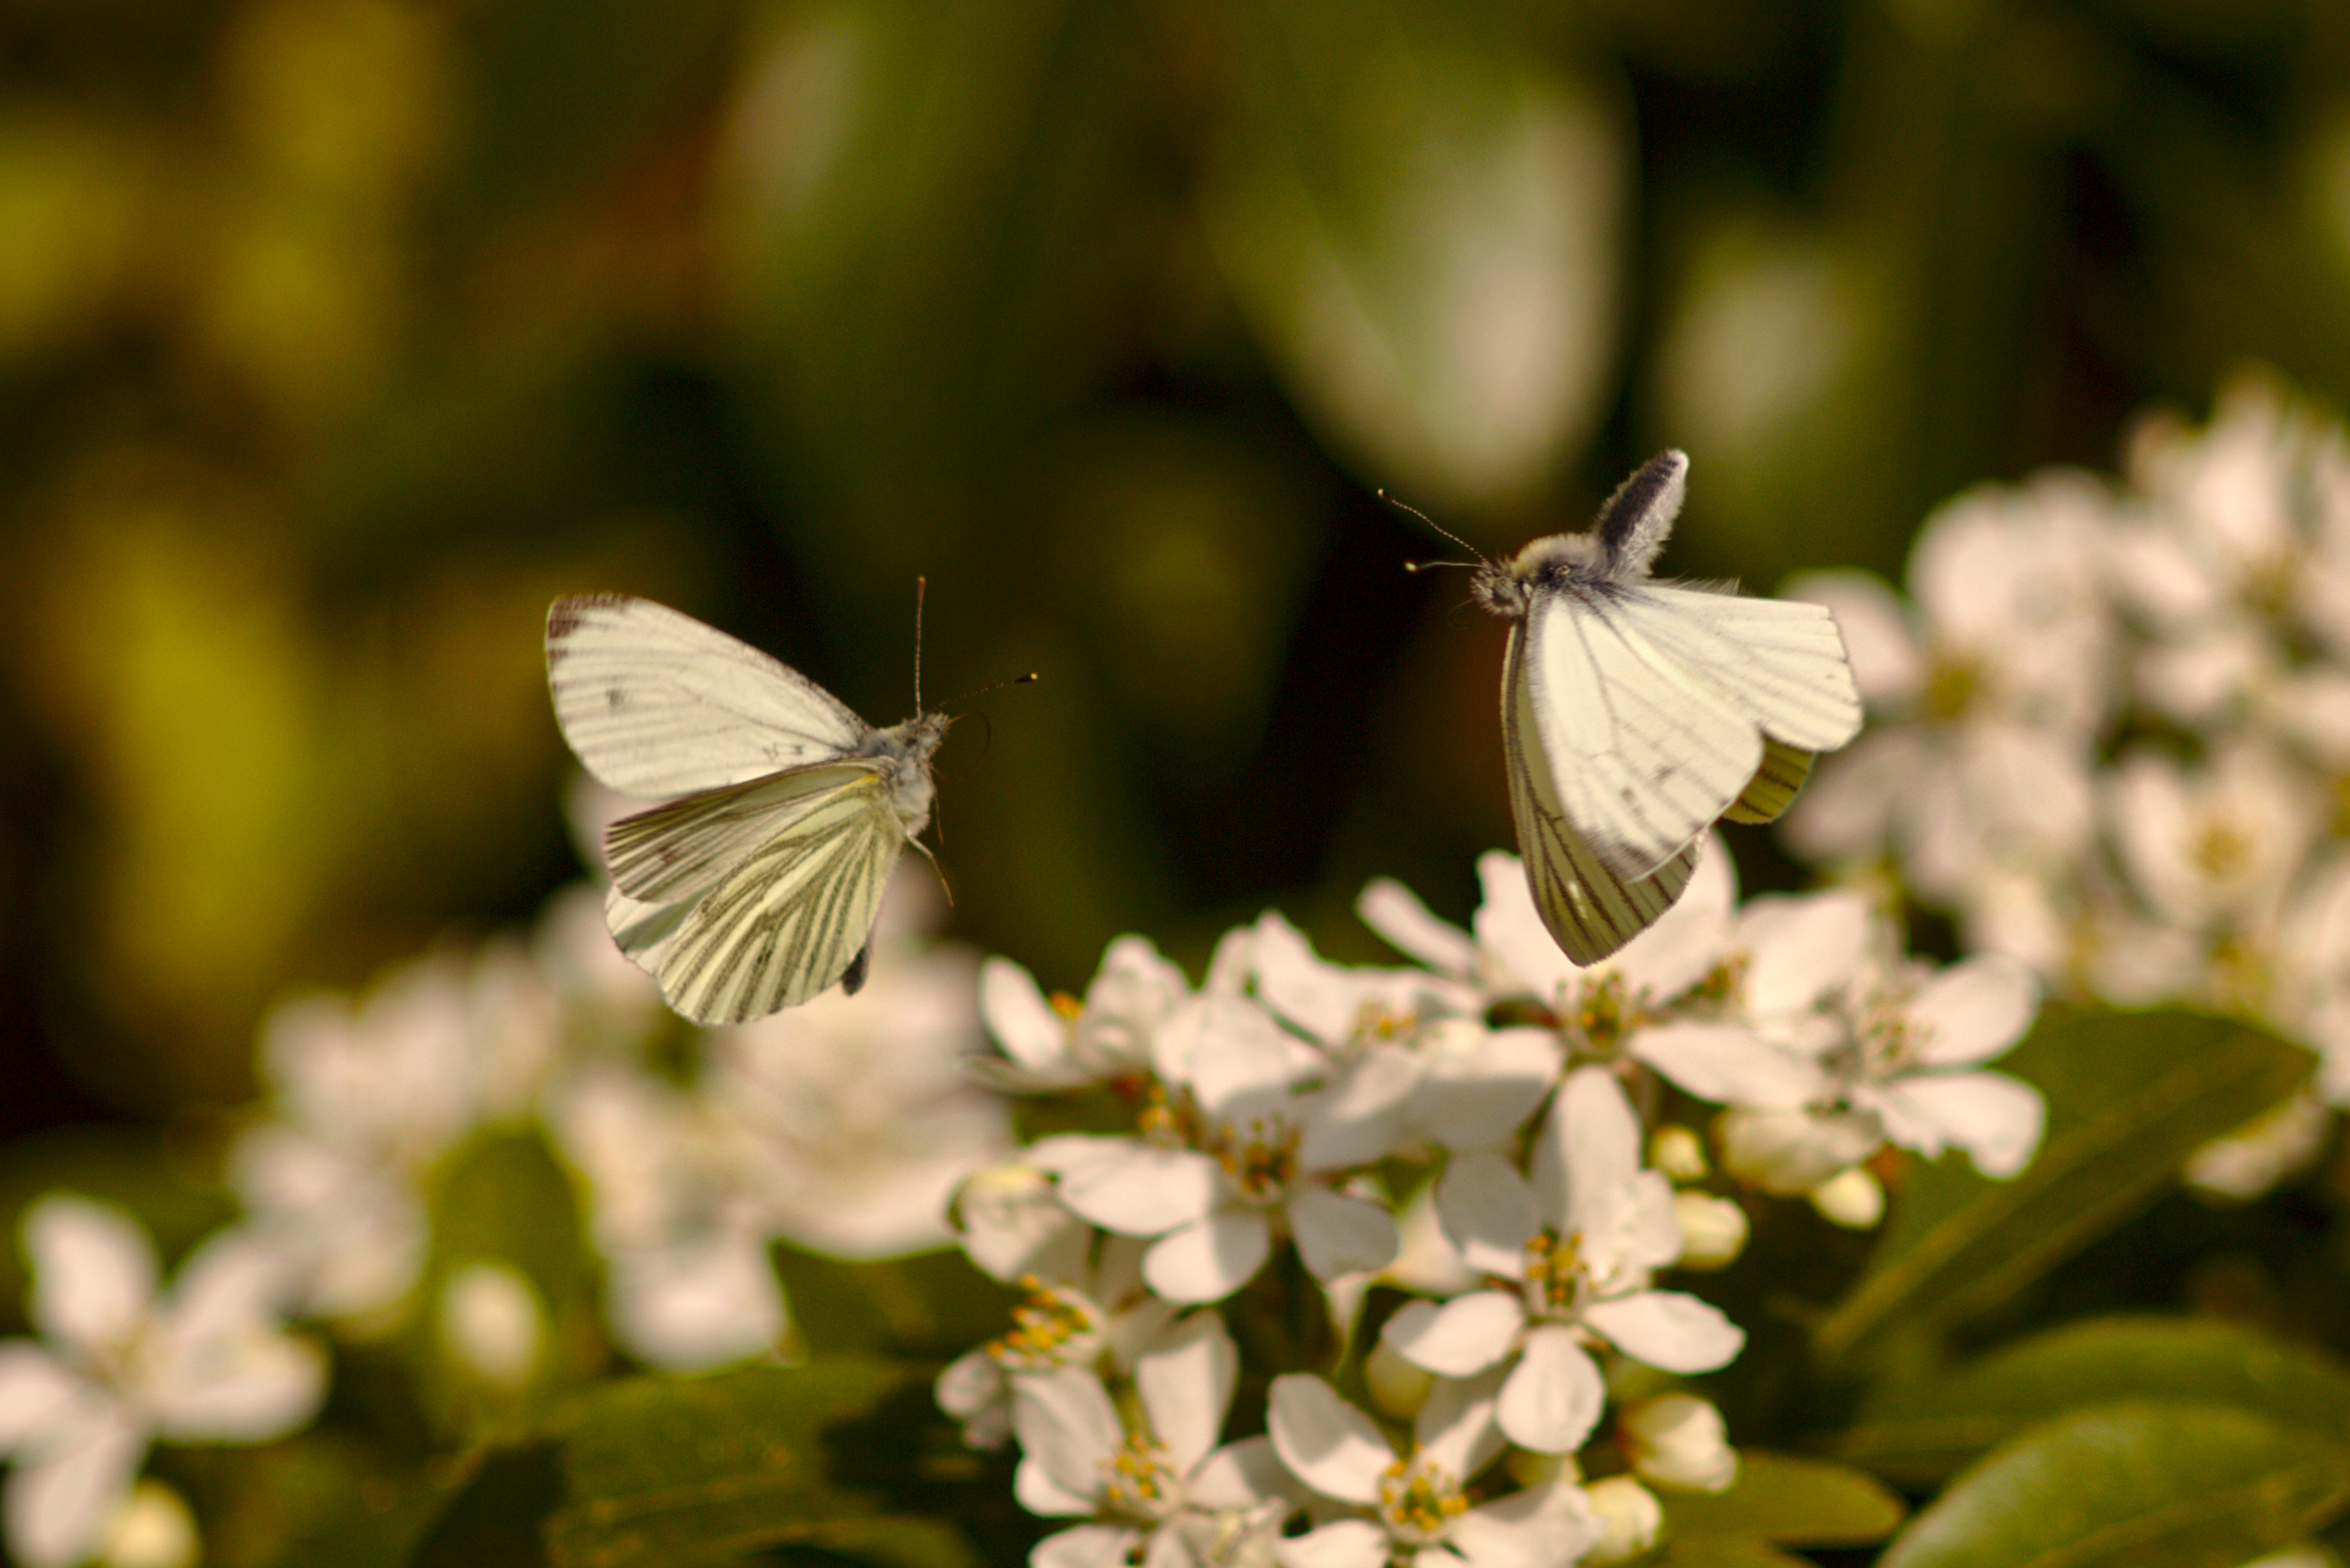 Butterflies in Flight, Butterflies, Depth of field, Fight, Flight, HQ Photo